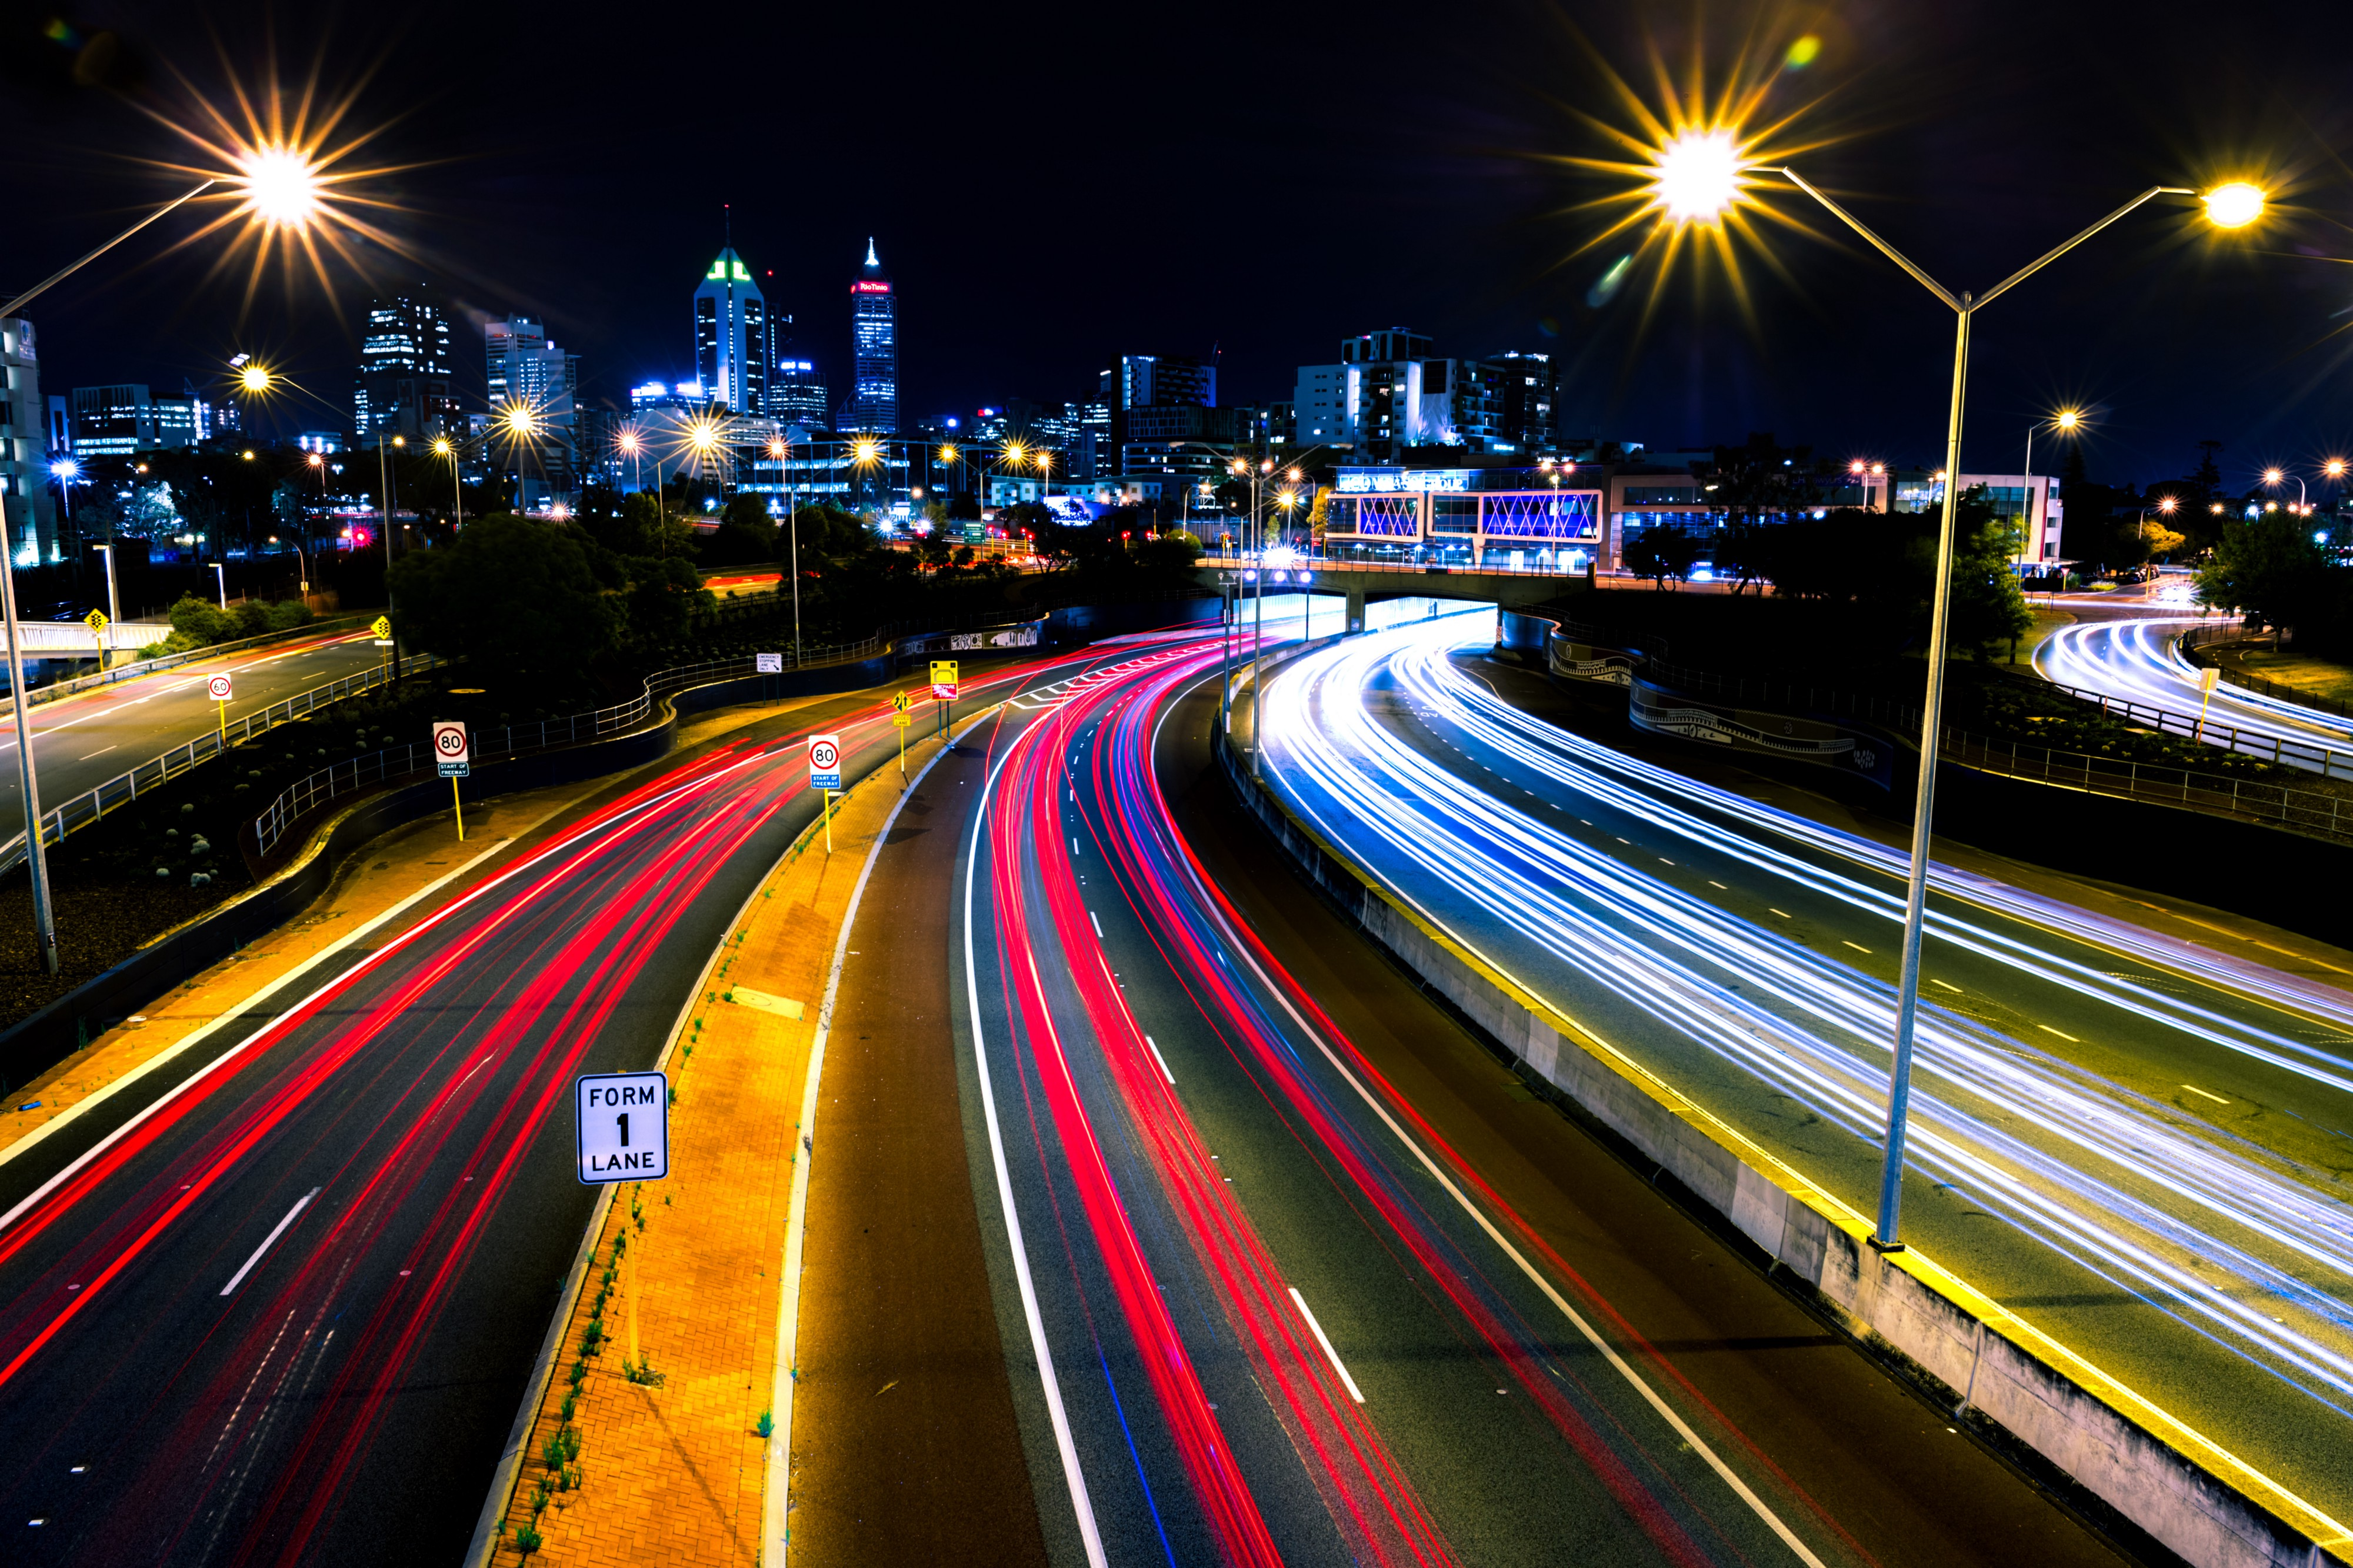 highway roads illuminated at night by cars and street lights